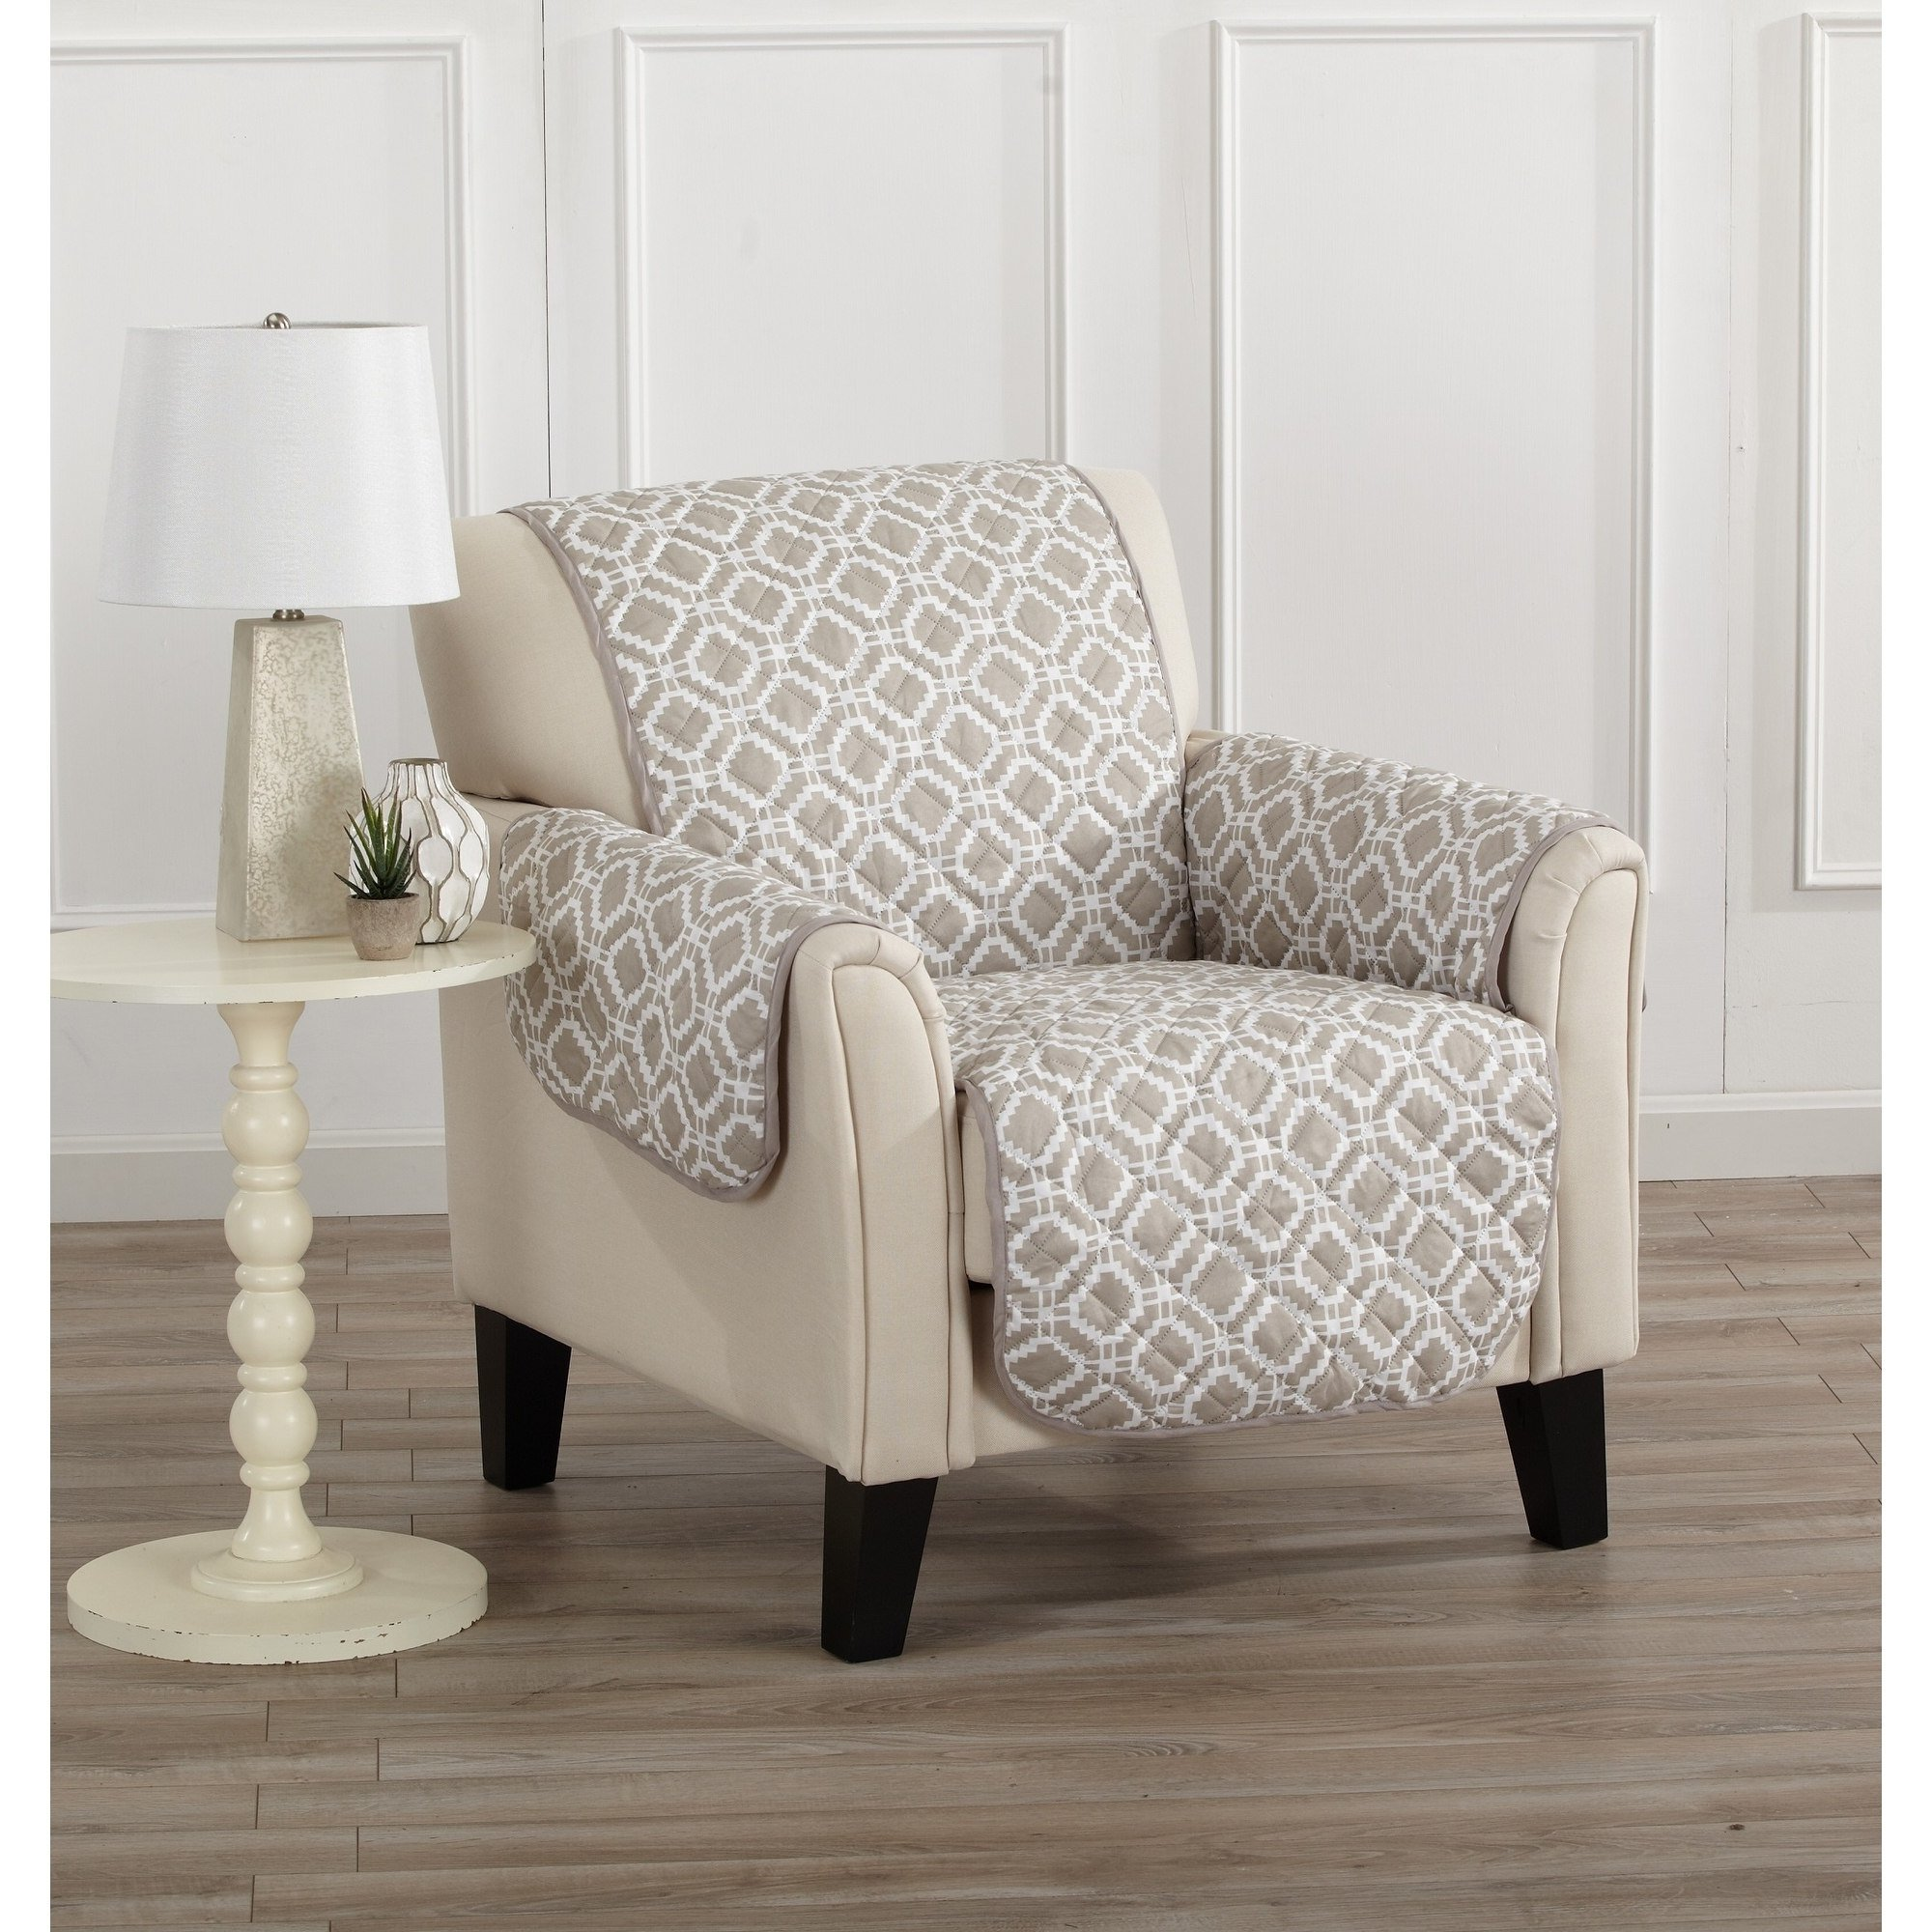 MN 1 Piece Storm Grey Geometric Chair Protector, Gray Medallion Diamond Shape Pattern Circle Dot Ikat Jacquard Modern Sleek Trendy Couch Protection Cover Pets Animals Covers, Polyester